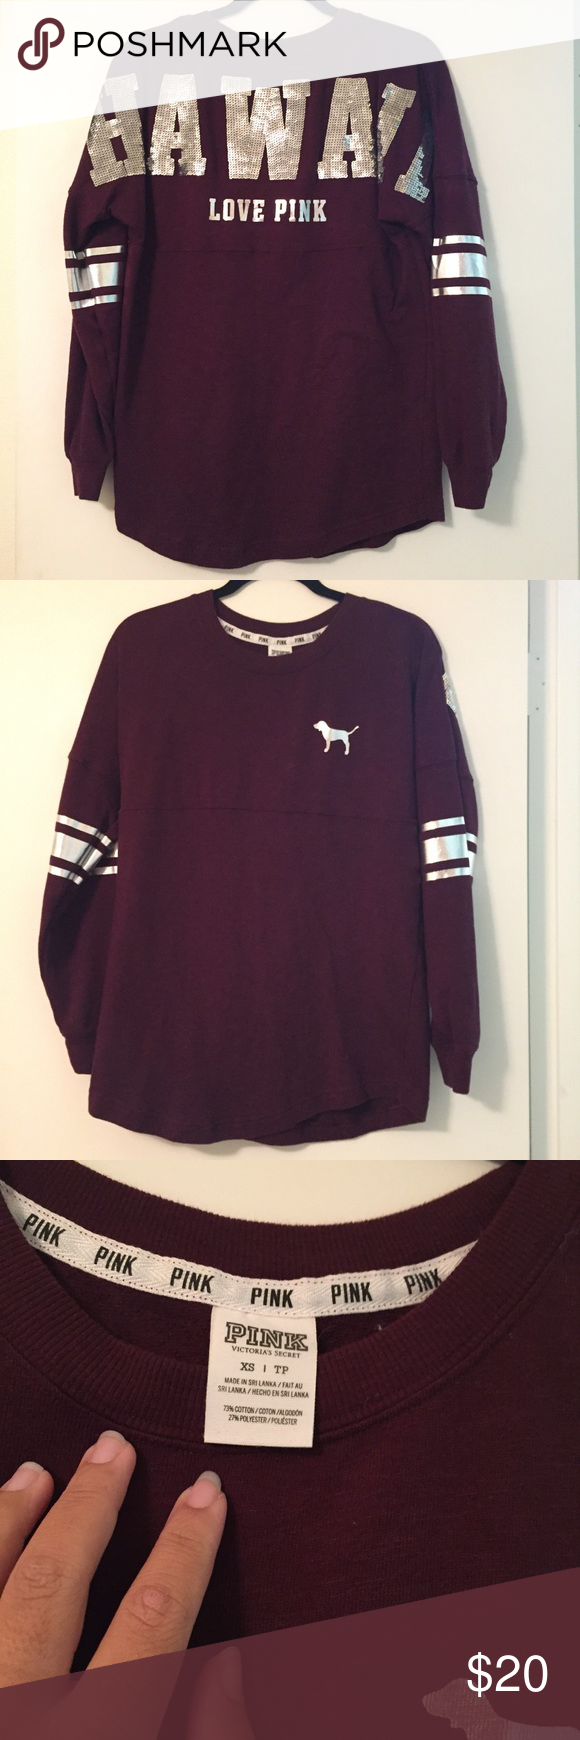 Victoria's Secret PINK maroon HAWAII sweatshirt | Burgundy color ...